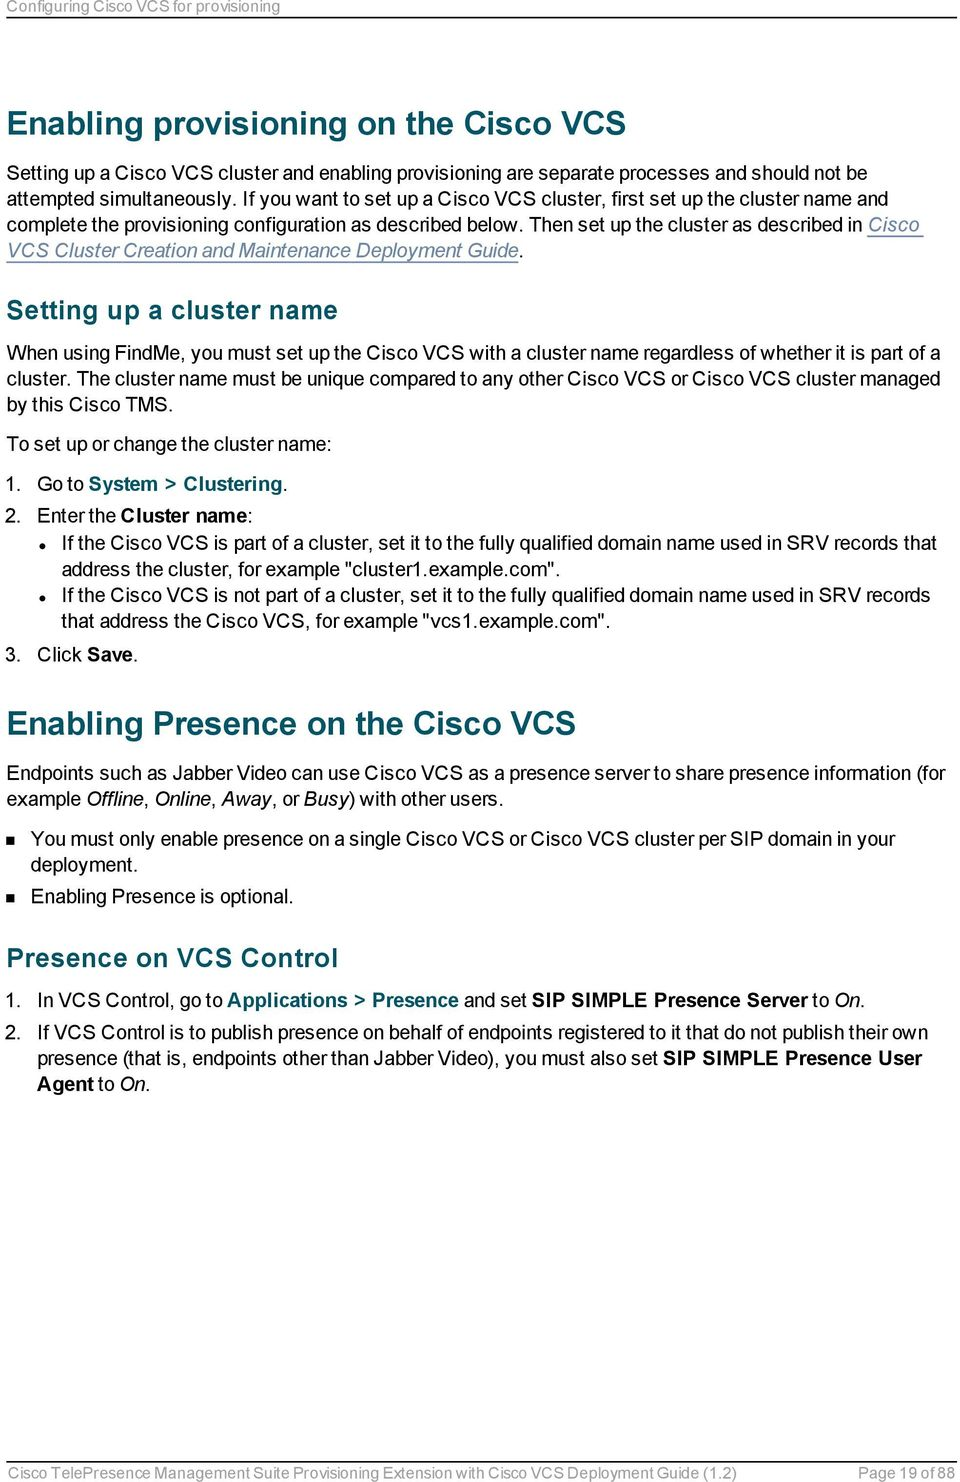 Then set up the cluster as described in Cisco VCS Cluster Creation and Maintenance Deployment Guide.